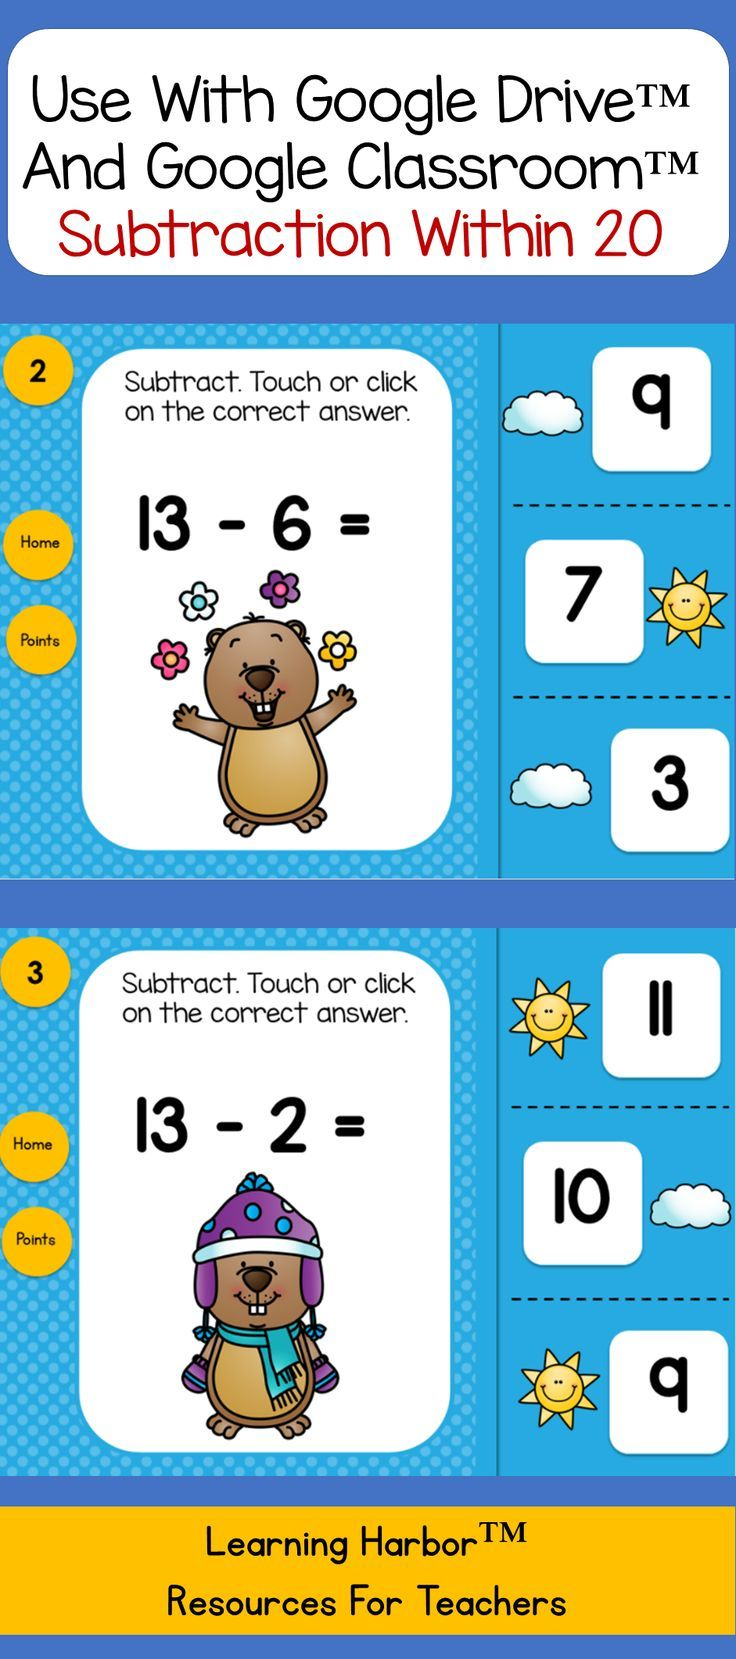 Subtraction Within 20 Groundhog Day | Math facts, Math and Activities